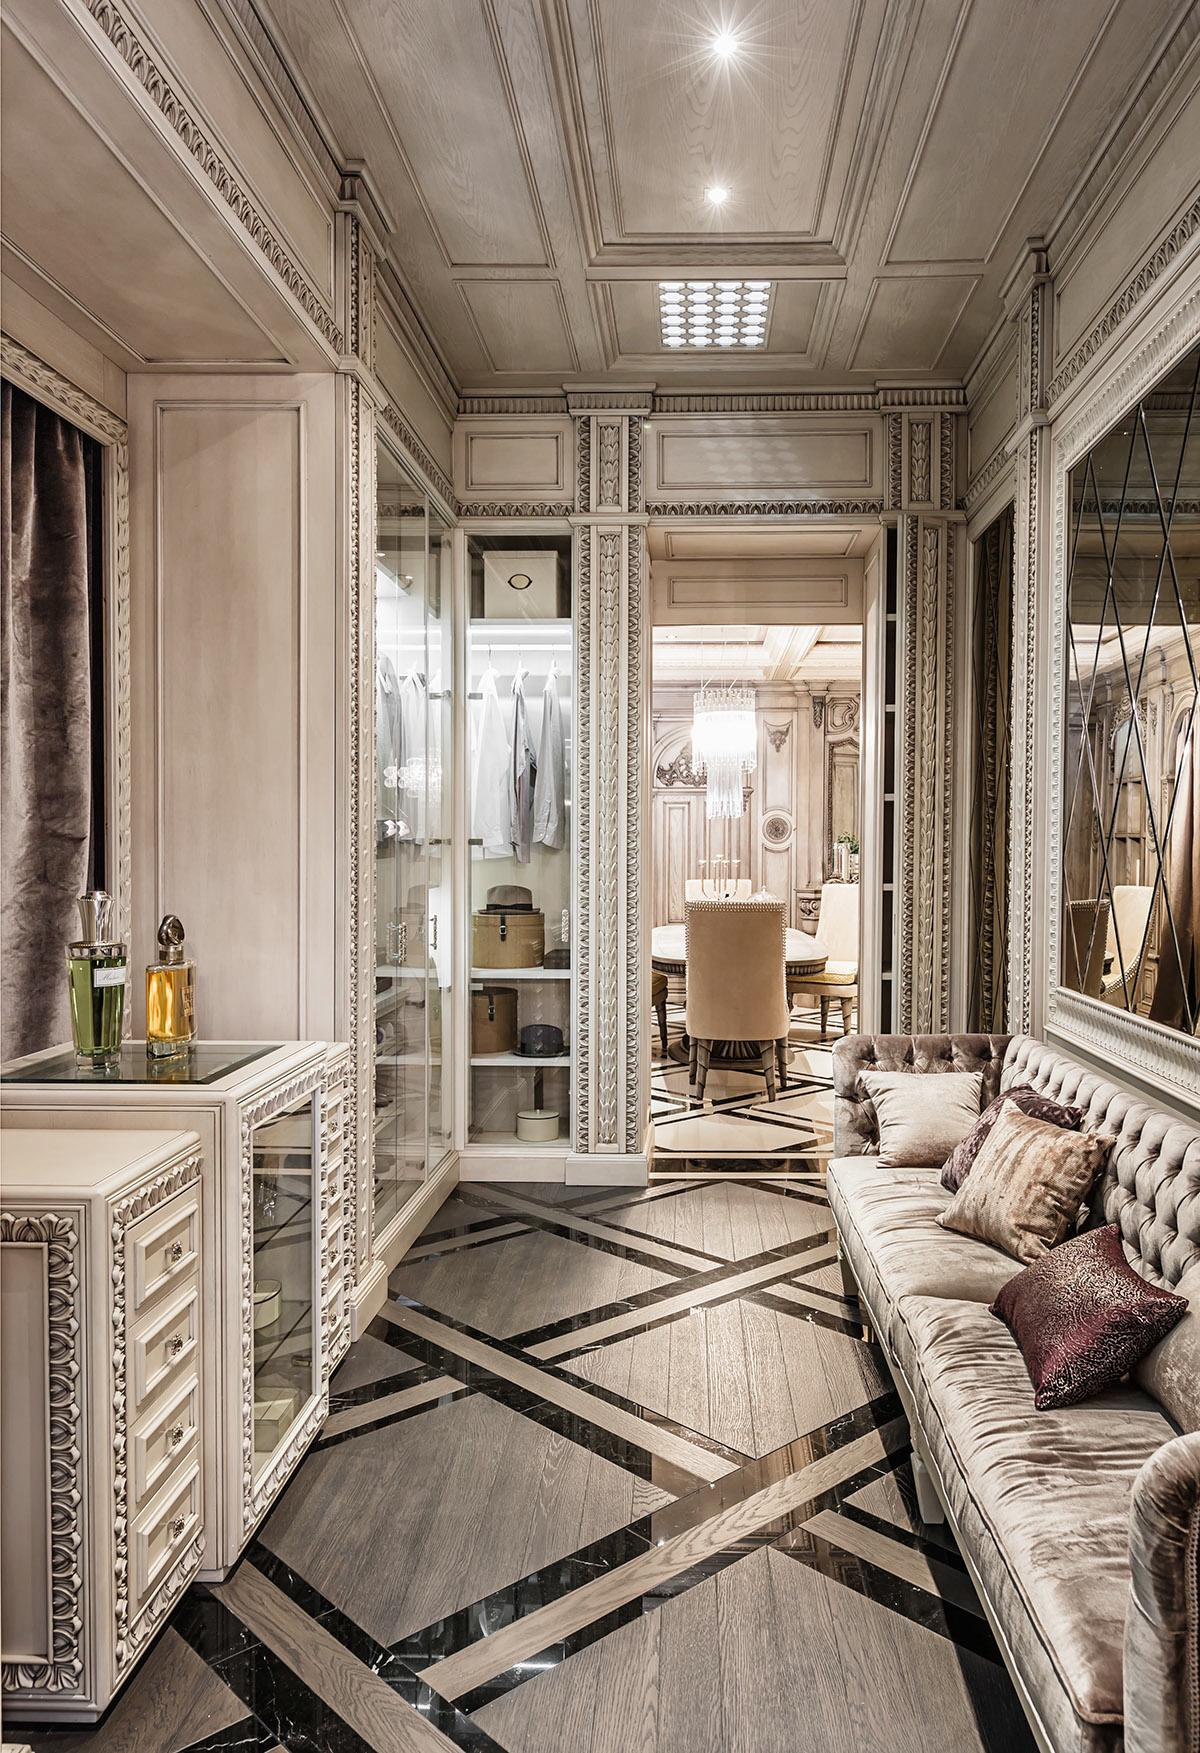 Neoclassical and art deco features in two luxurious interiors Contemporary interior design